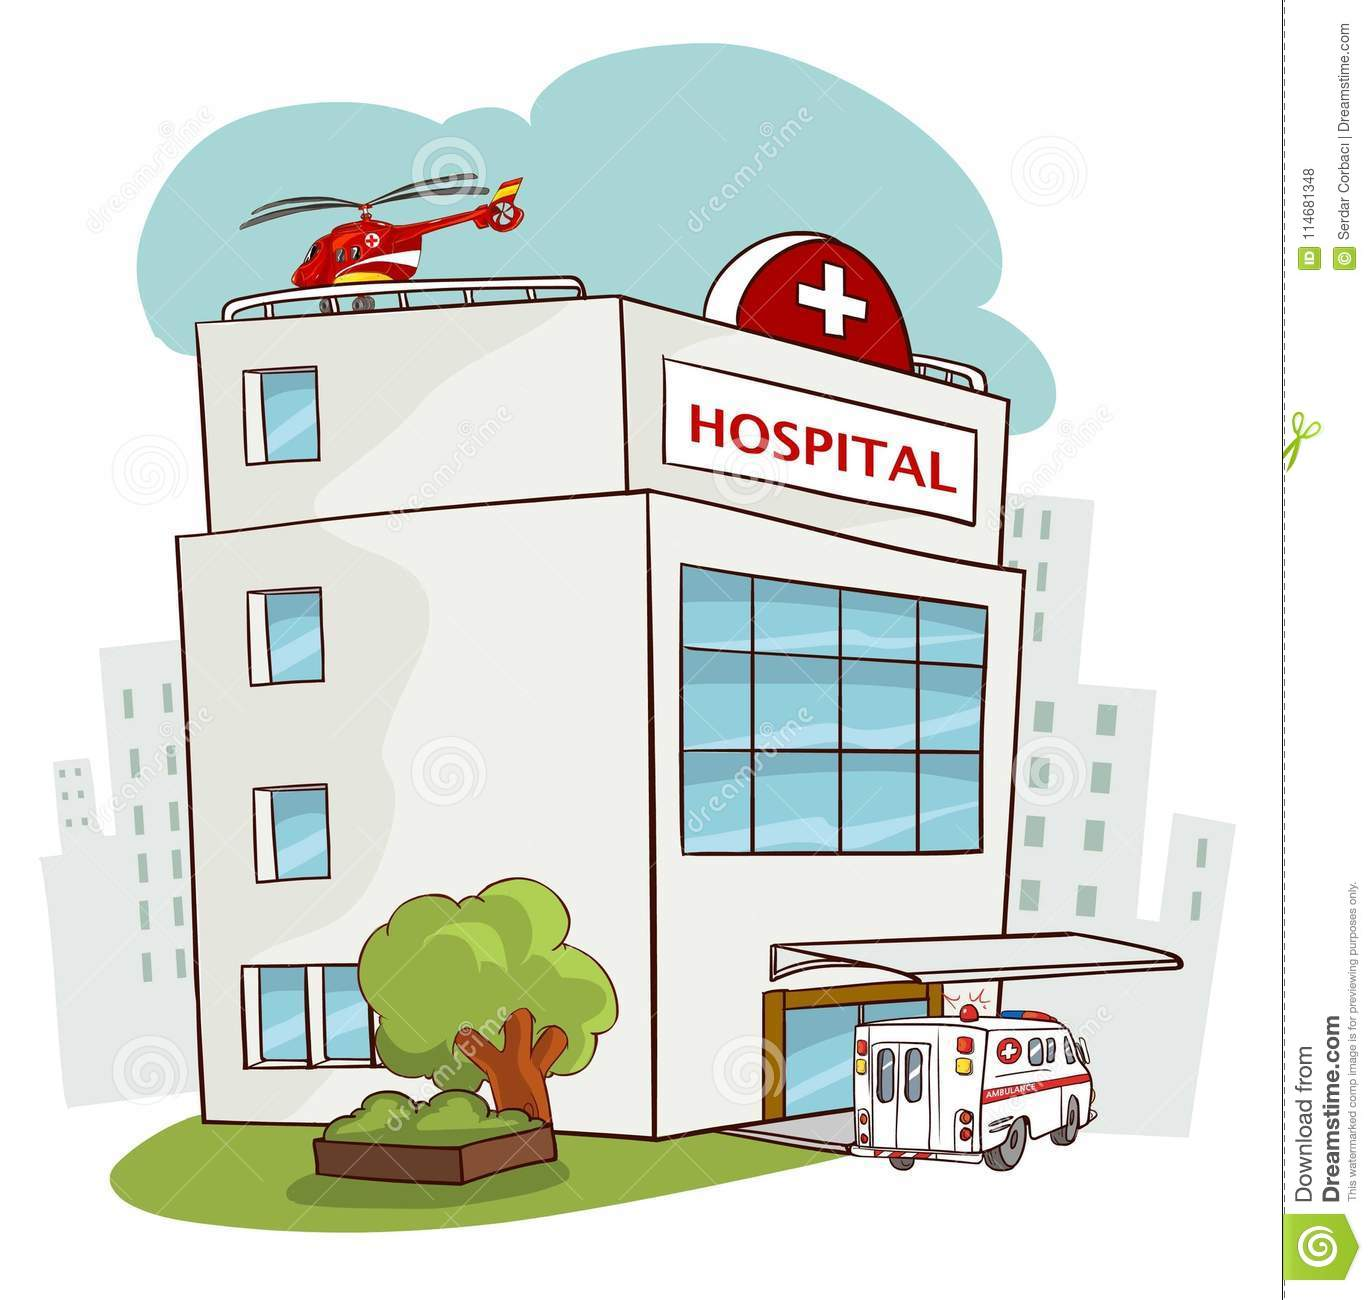 Hospital building, medical icon. Healthcare, hospital and medica